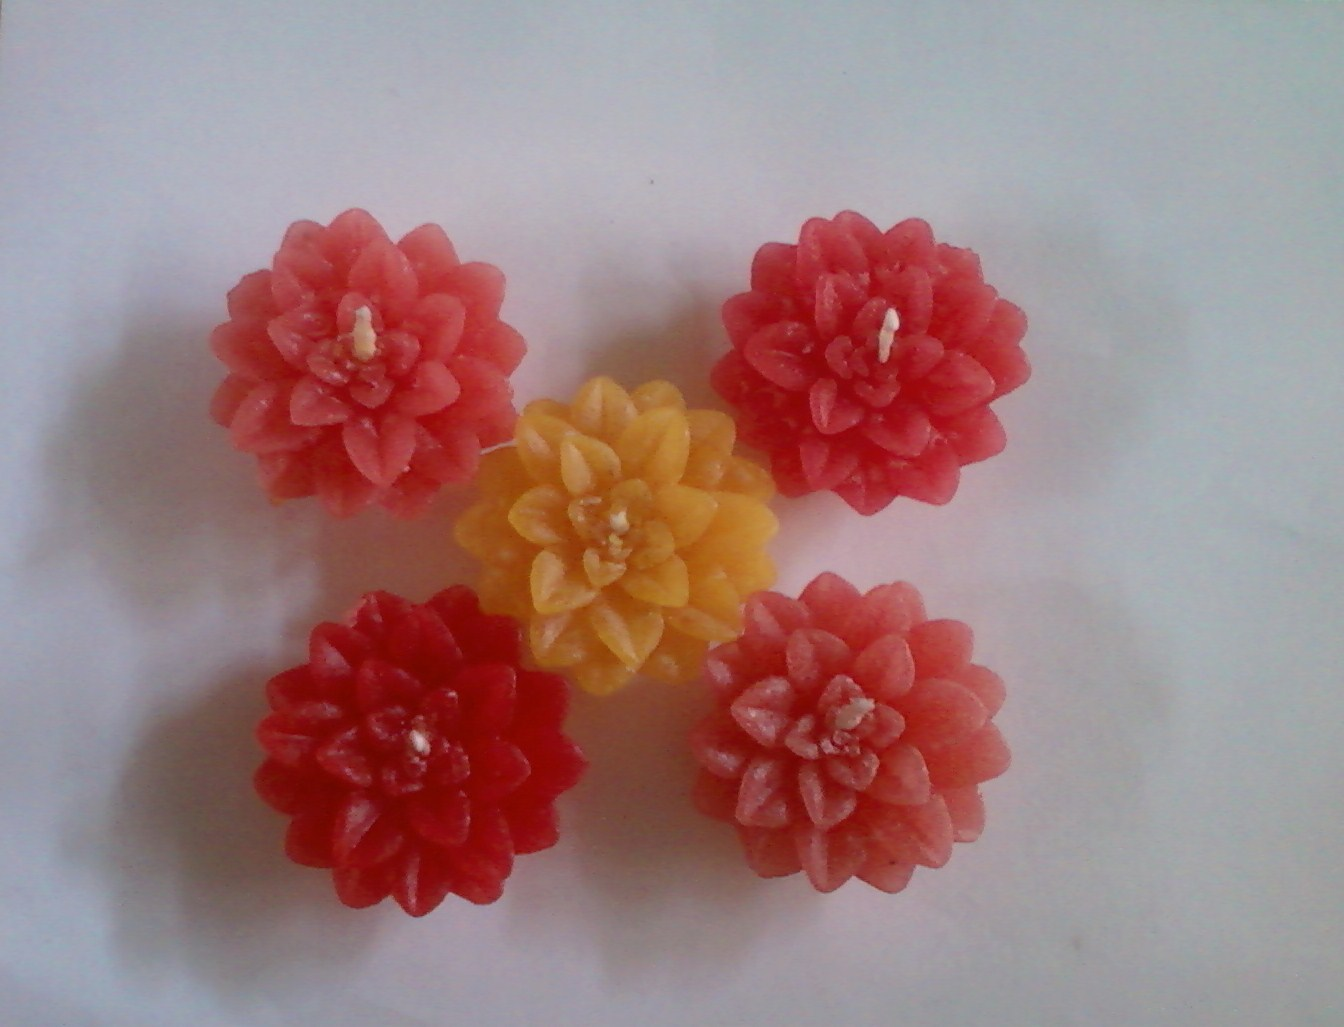 Anitakumarcandlecraft Floating Flower Candles